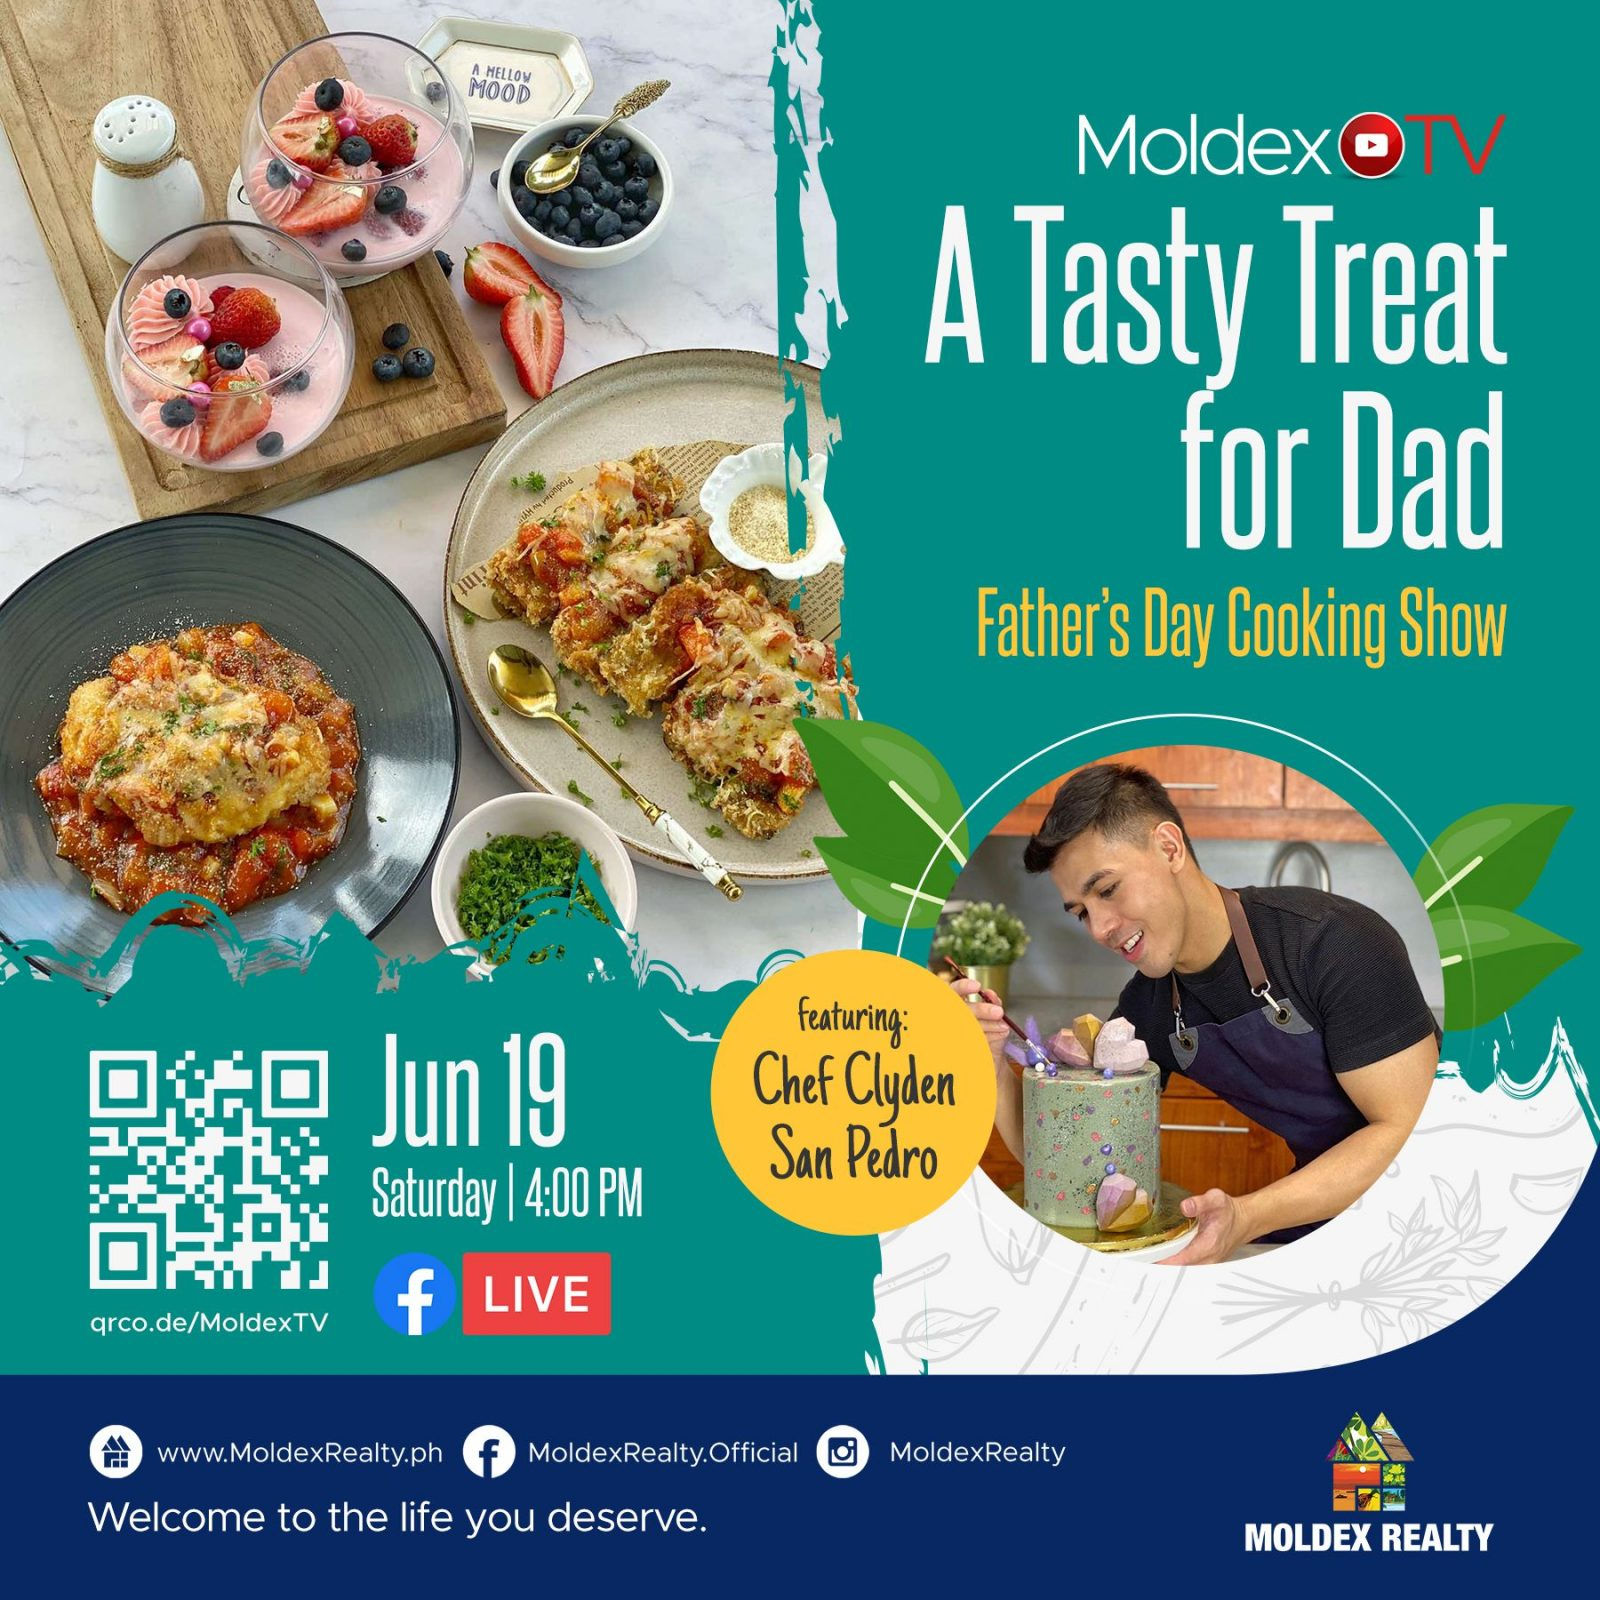 A Tasty Treat for Dad (Father's Day Cooking Show)